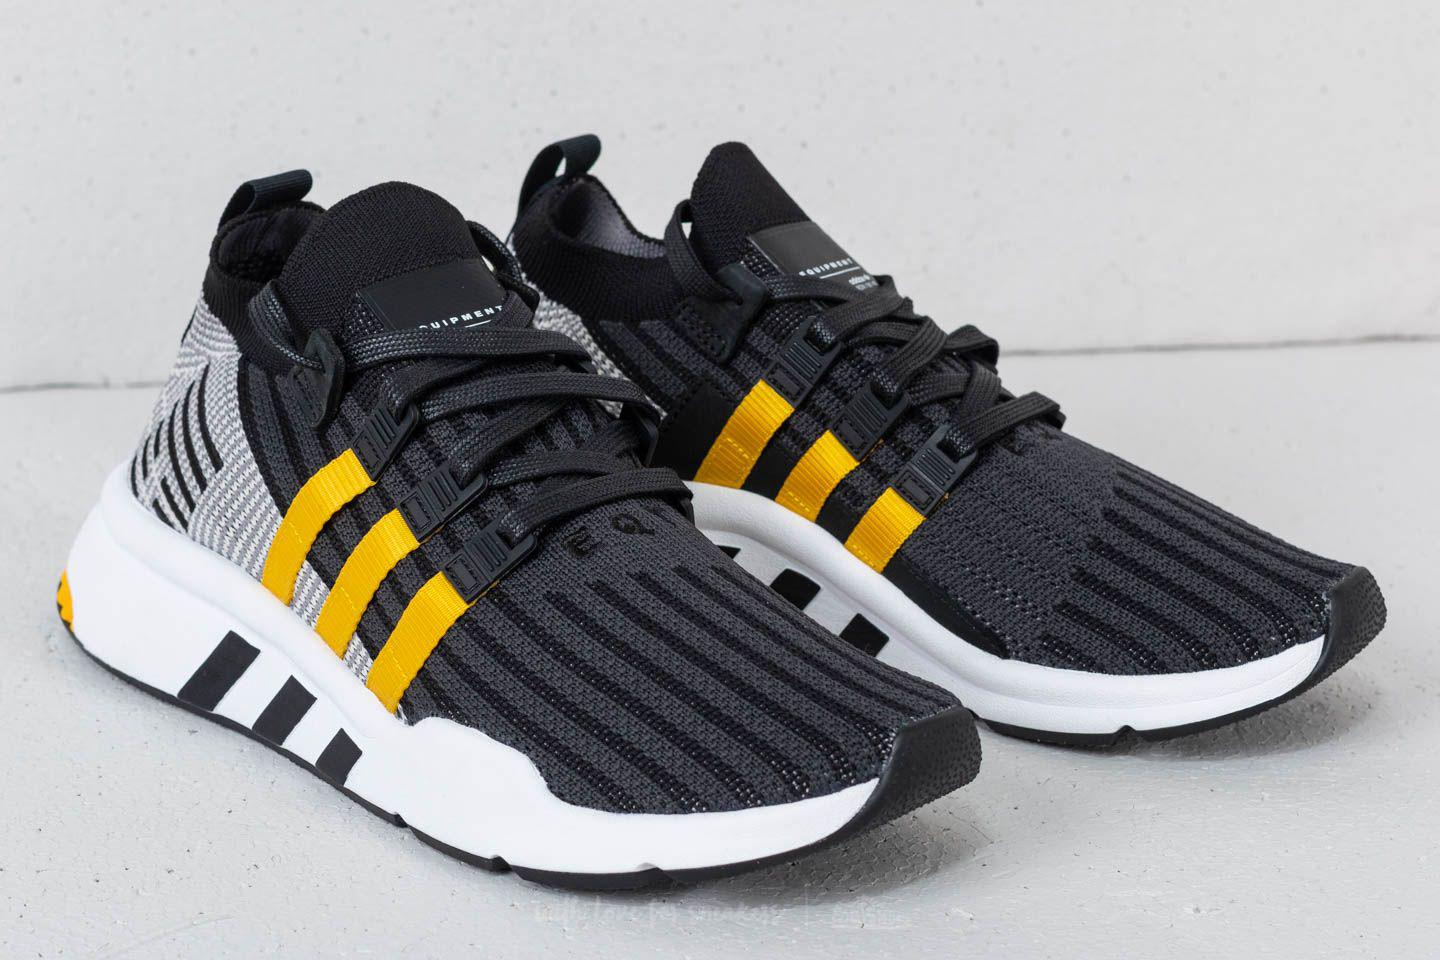 41bc9d892d0a ... discount code for adidas originals adidas eqt support mid adv primeknit  core black eqt yellow ftw